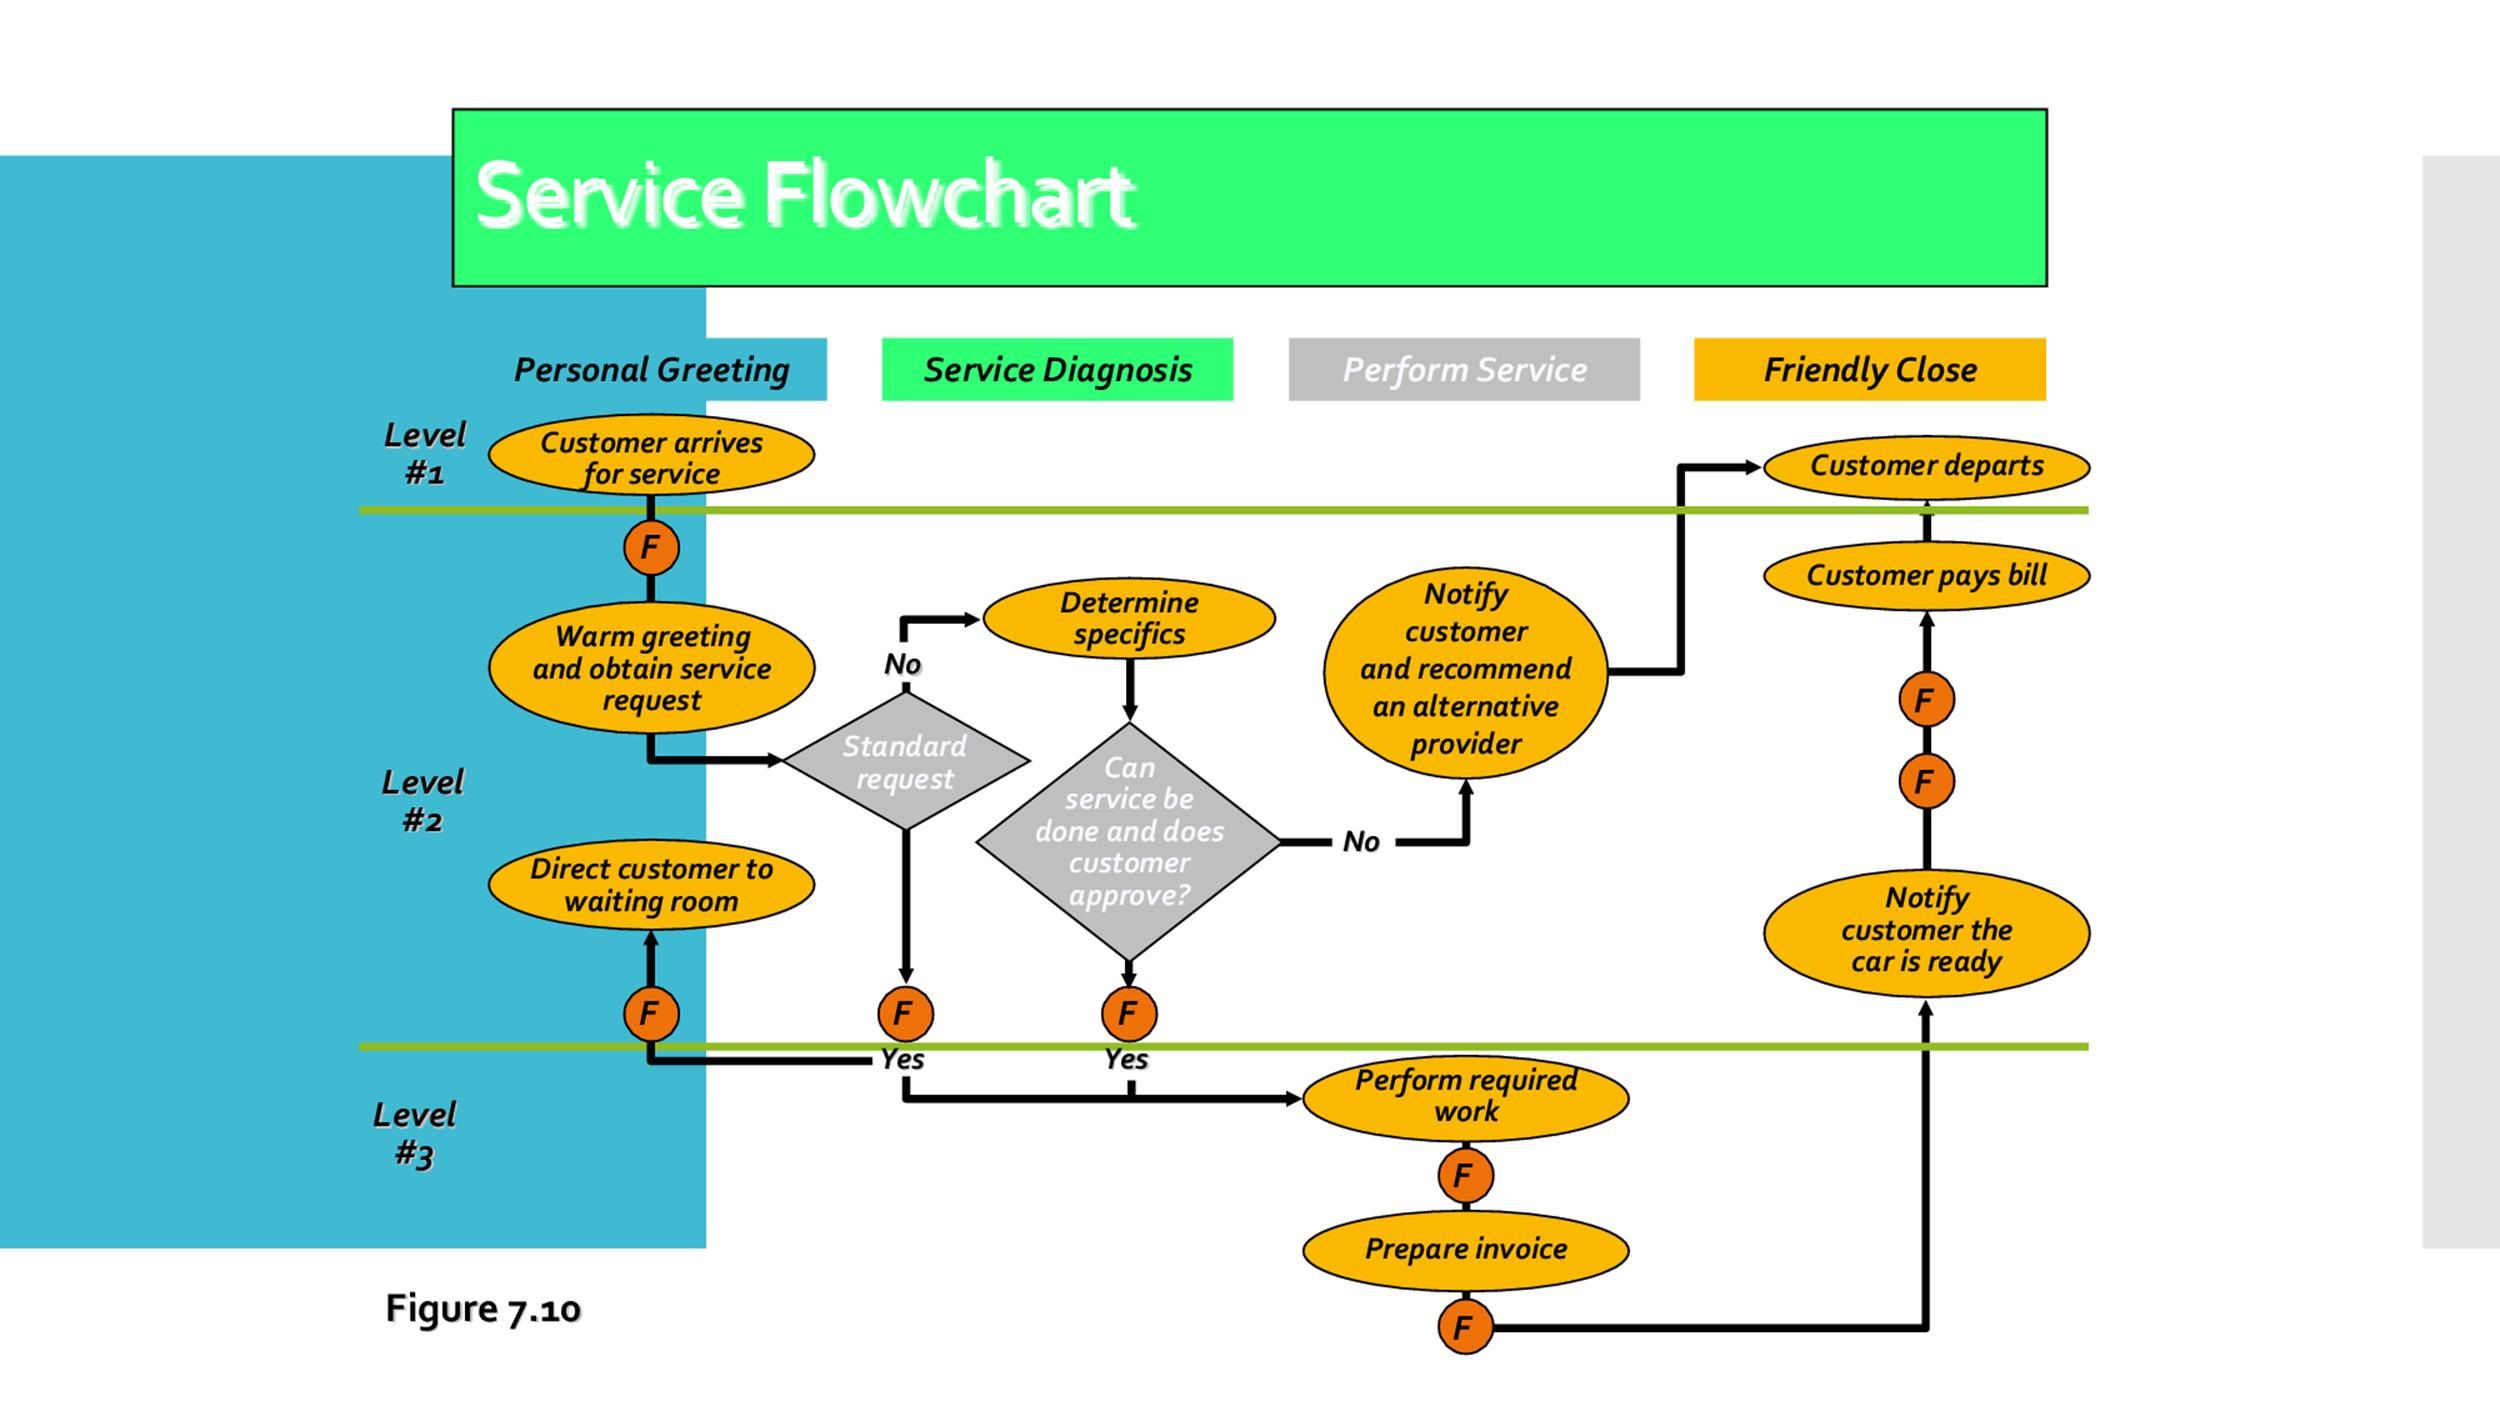 006 Surprising Free Flowchart Template Excel 2010 Picture Full